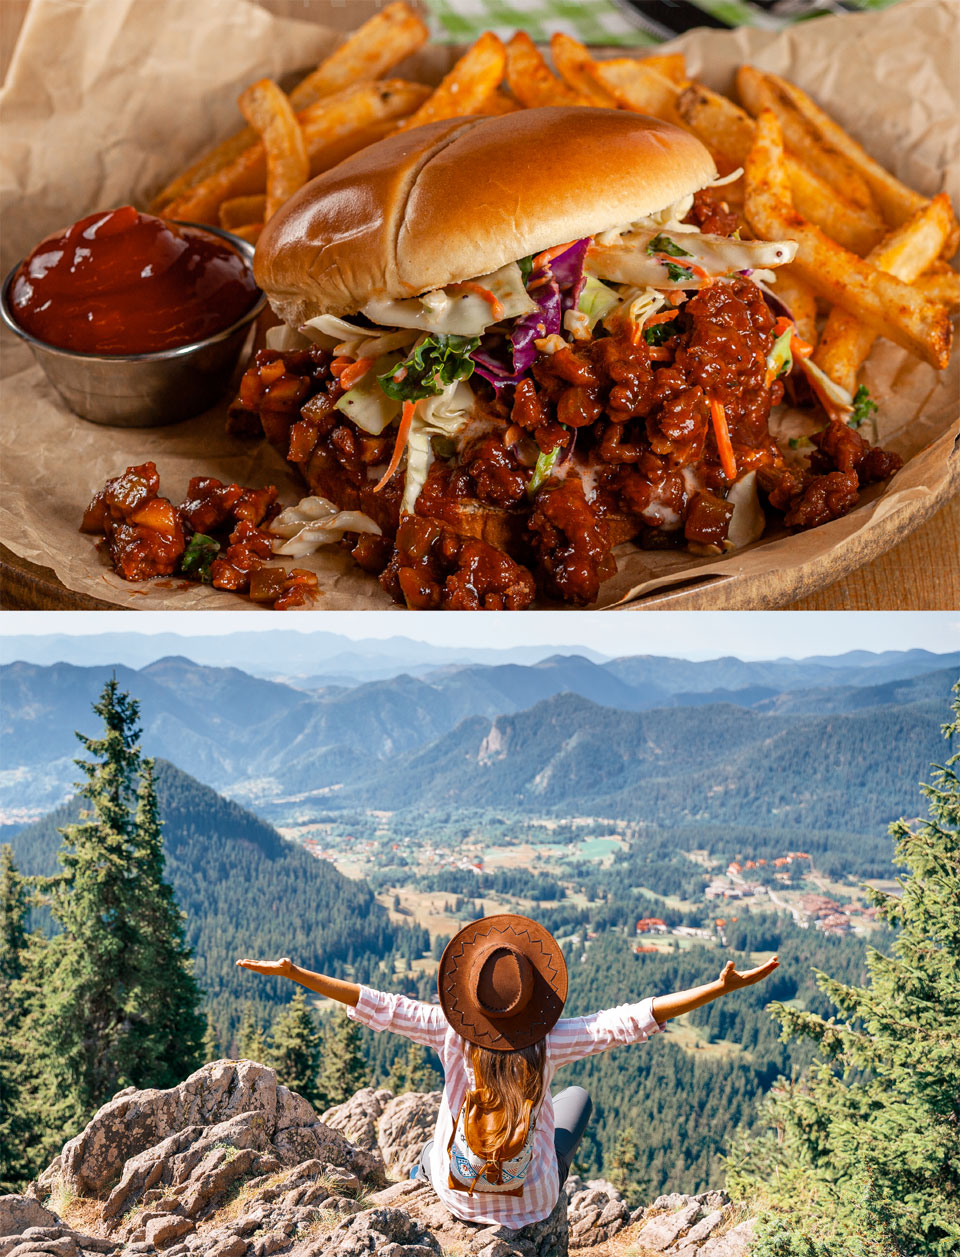 Sloppy Joe sandwich made from OZO plant-based grounds with a side of coleslaw and fries and Woman in cowboy hat with outstretched arms overlooking Colorado valley